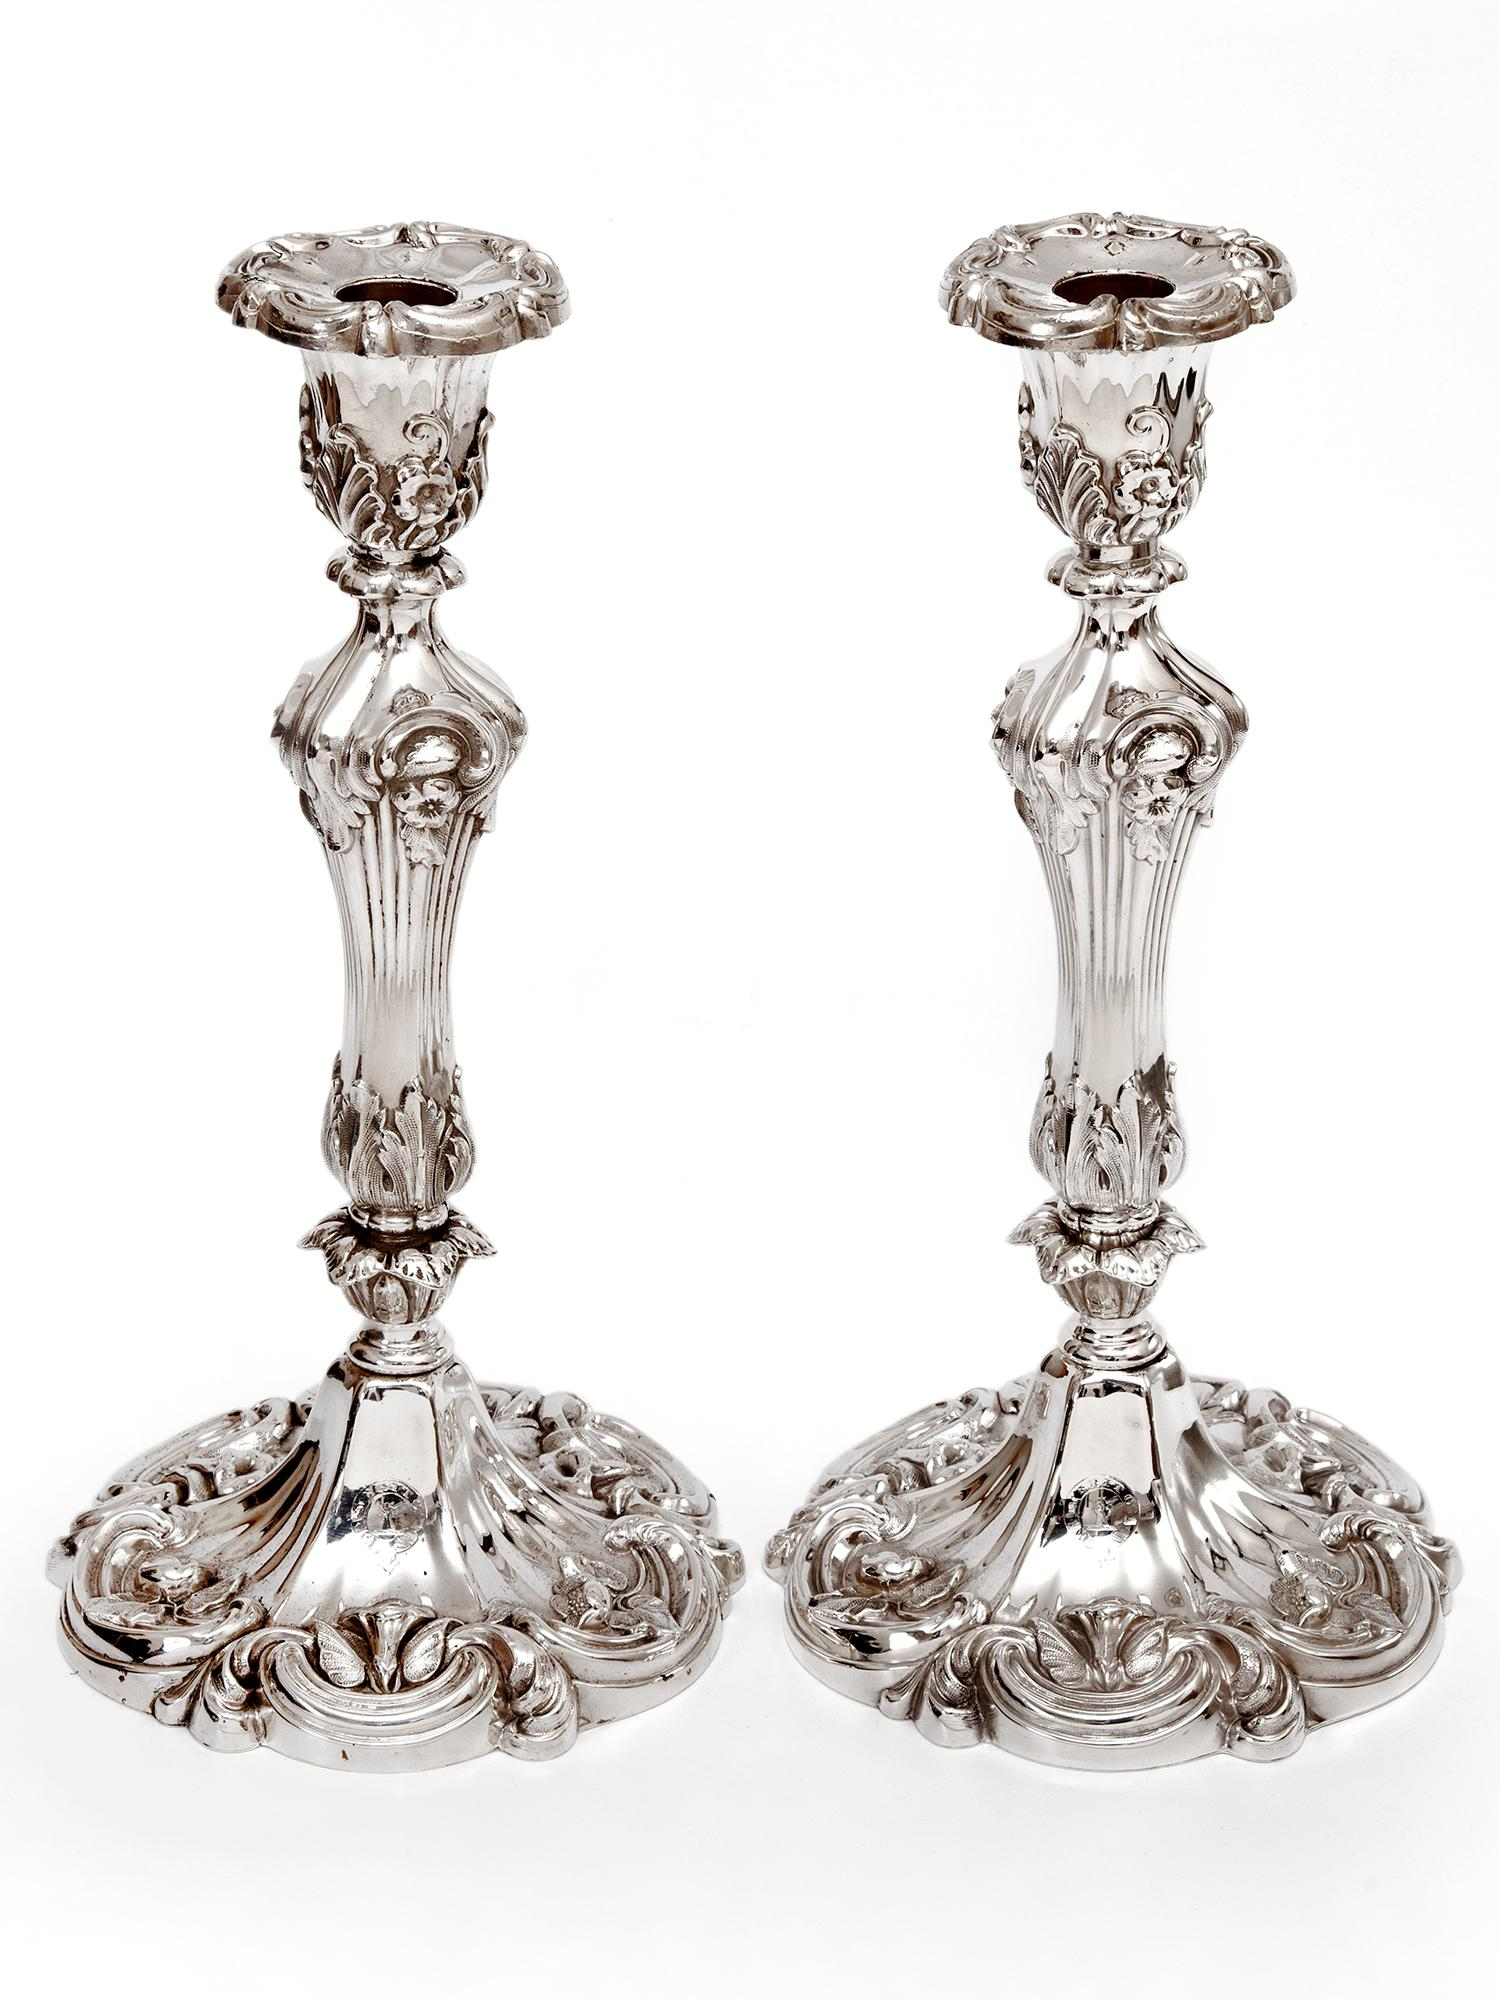 Piers Rankin Silver Antiques image (1 of 11)